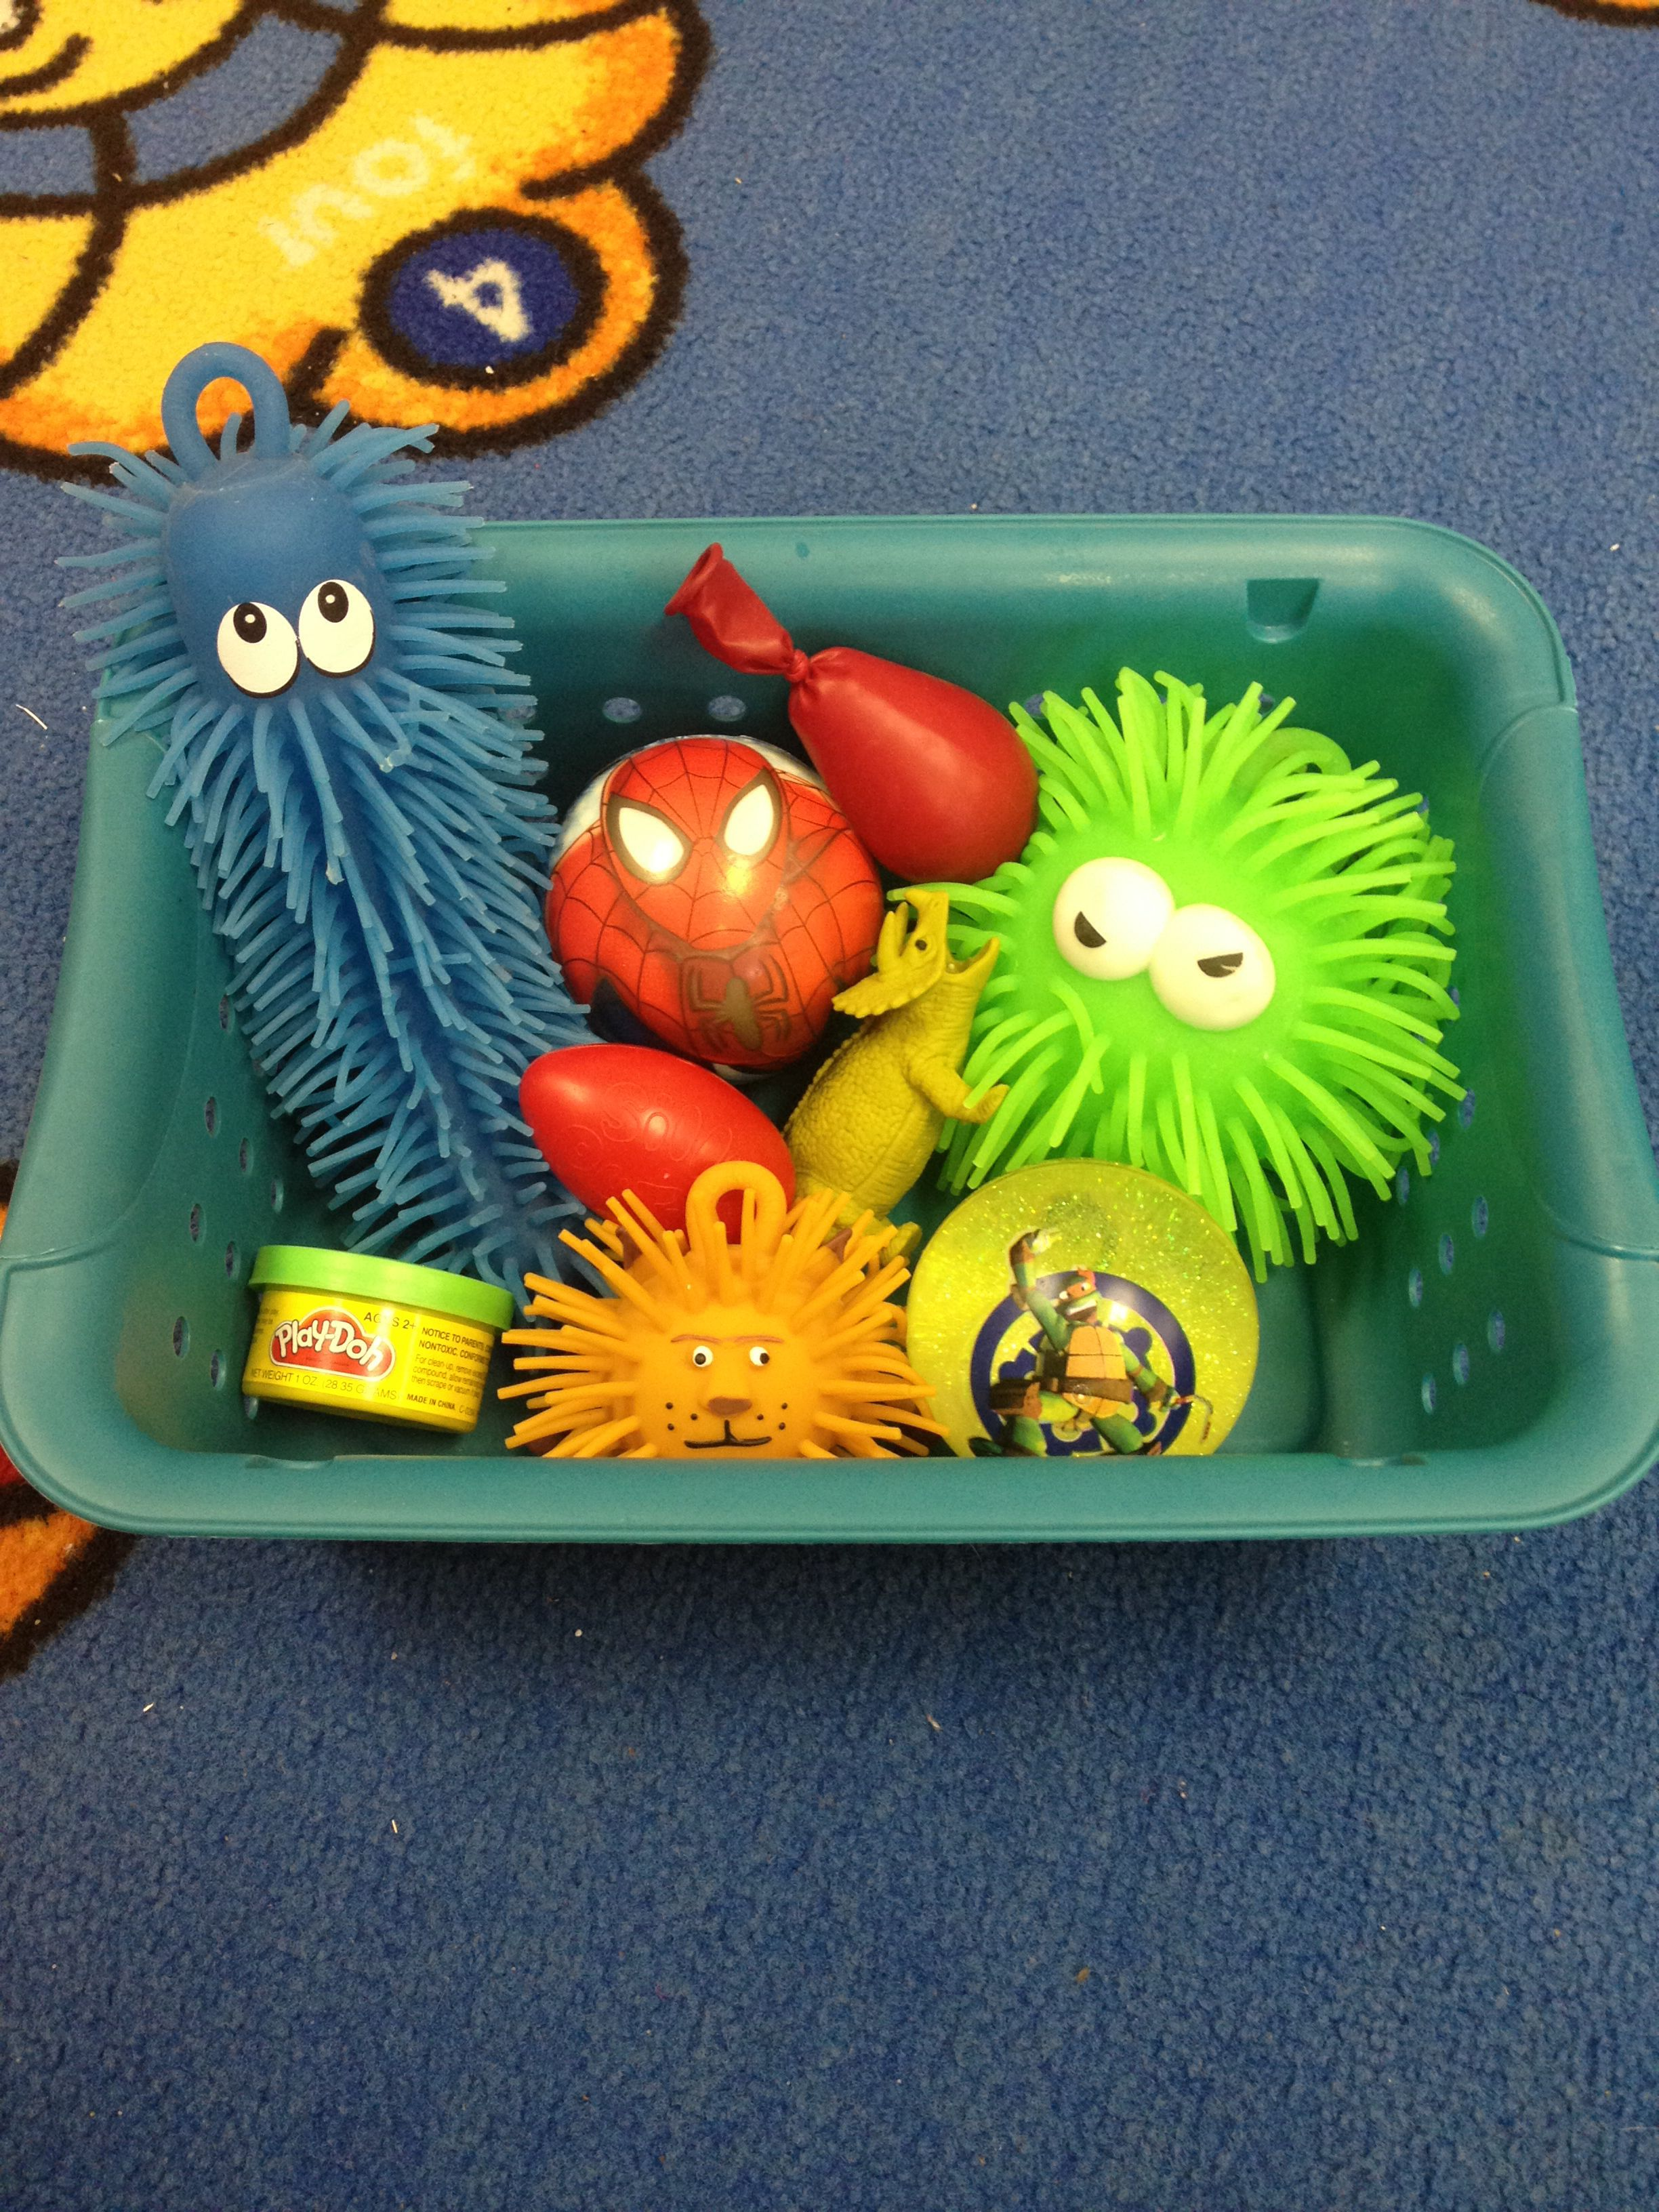 Calming Caddy Filled With Fidget Toys For Kids Who Need Constant Stimulation During Lessons To